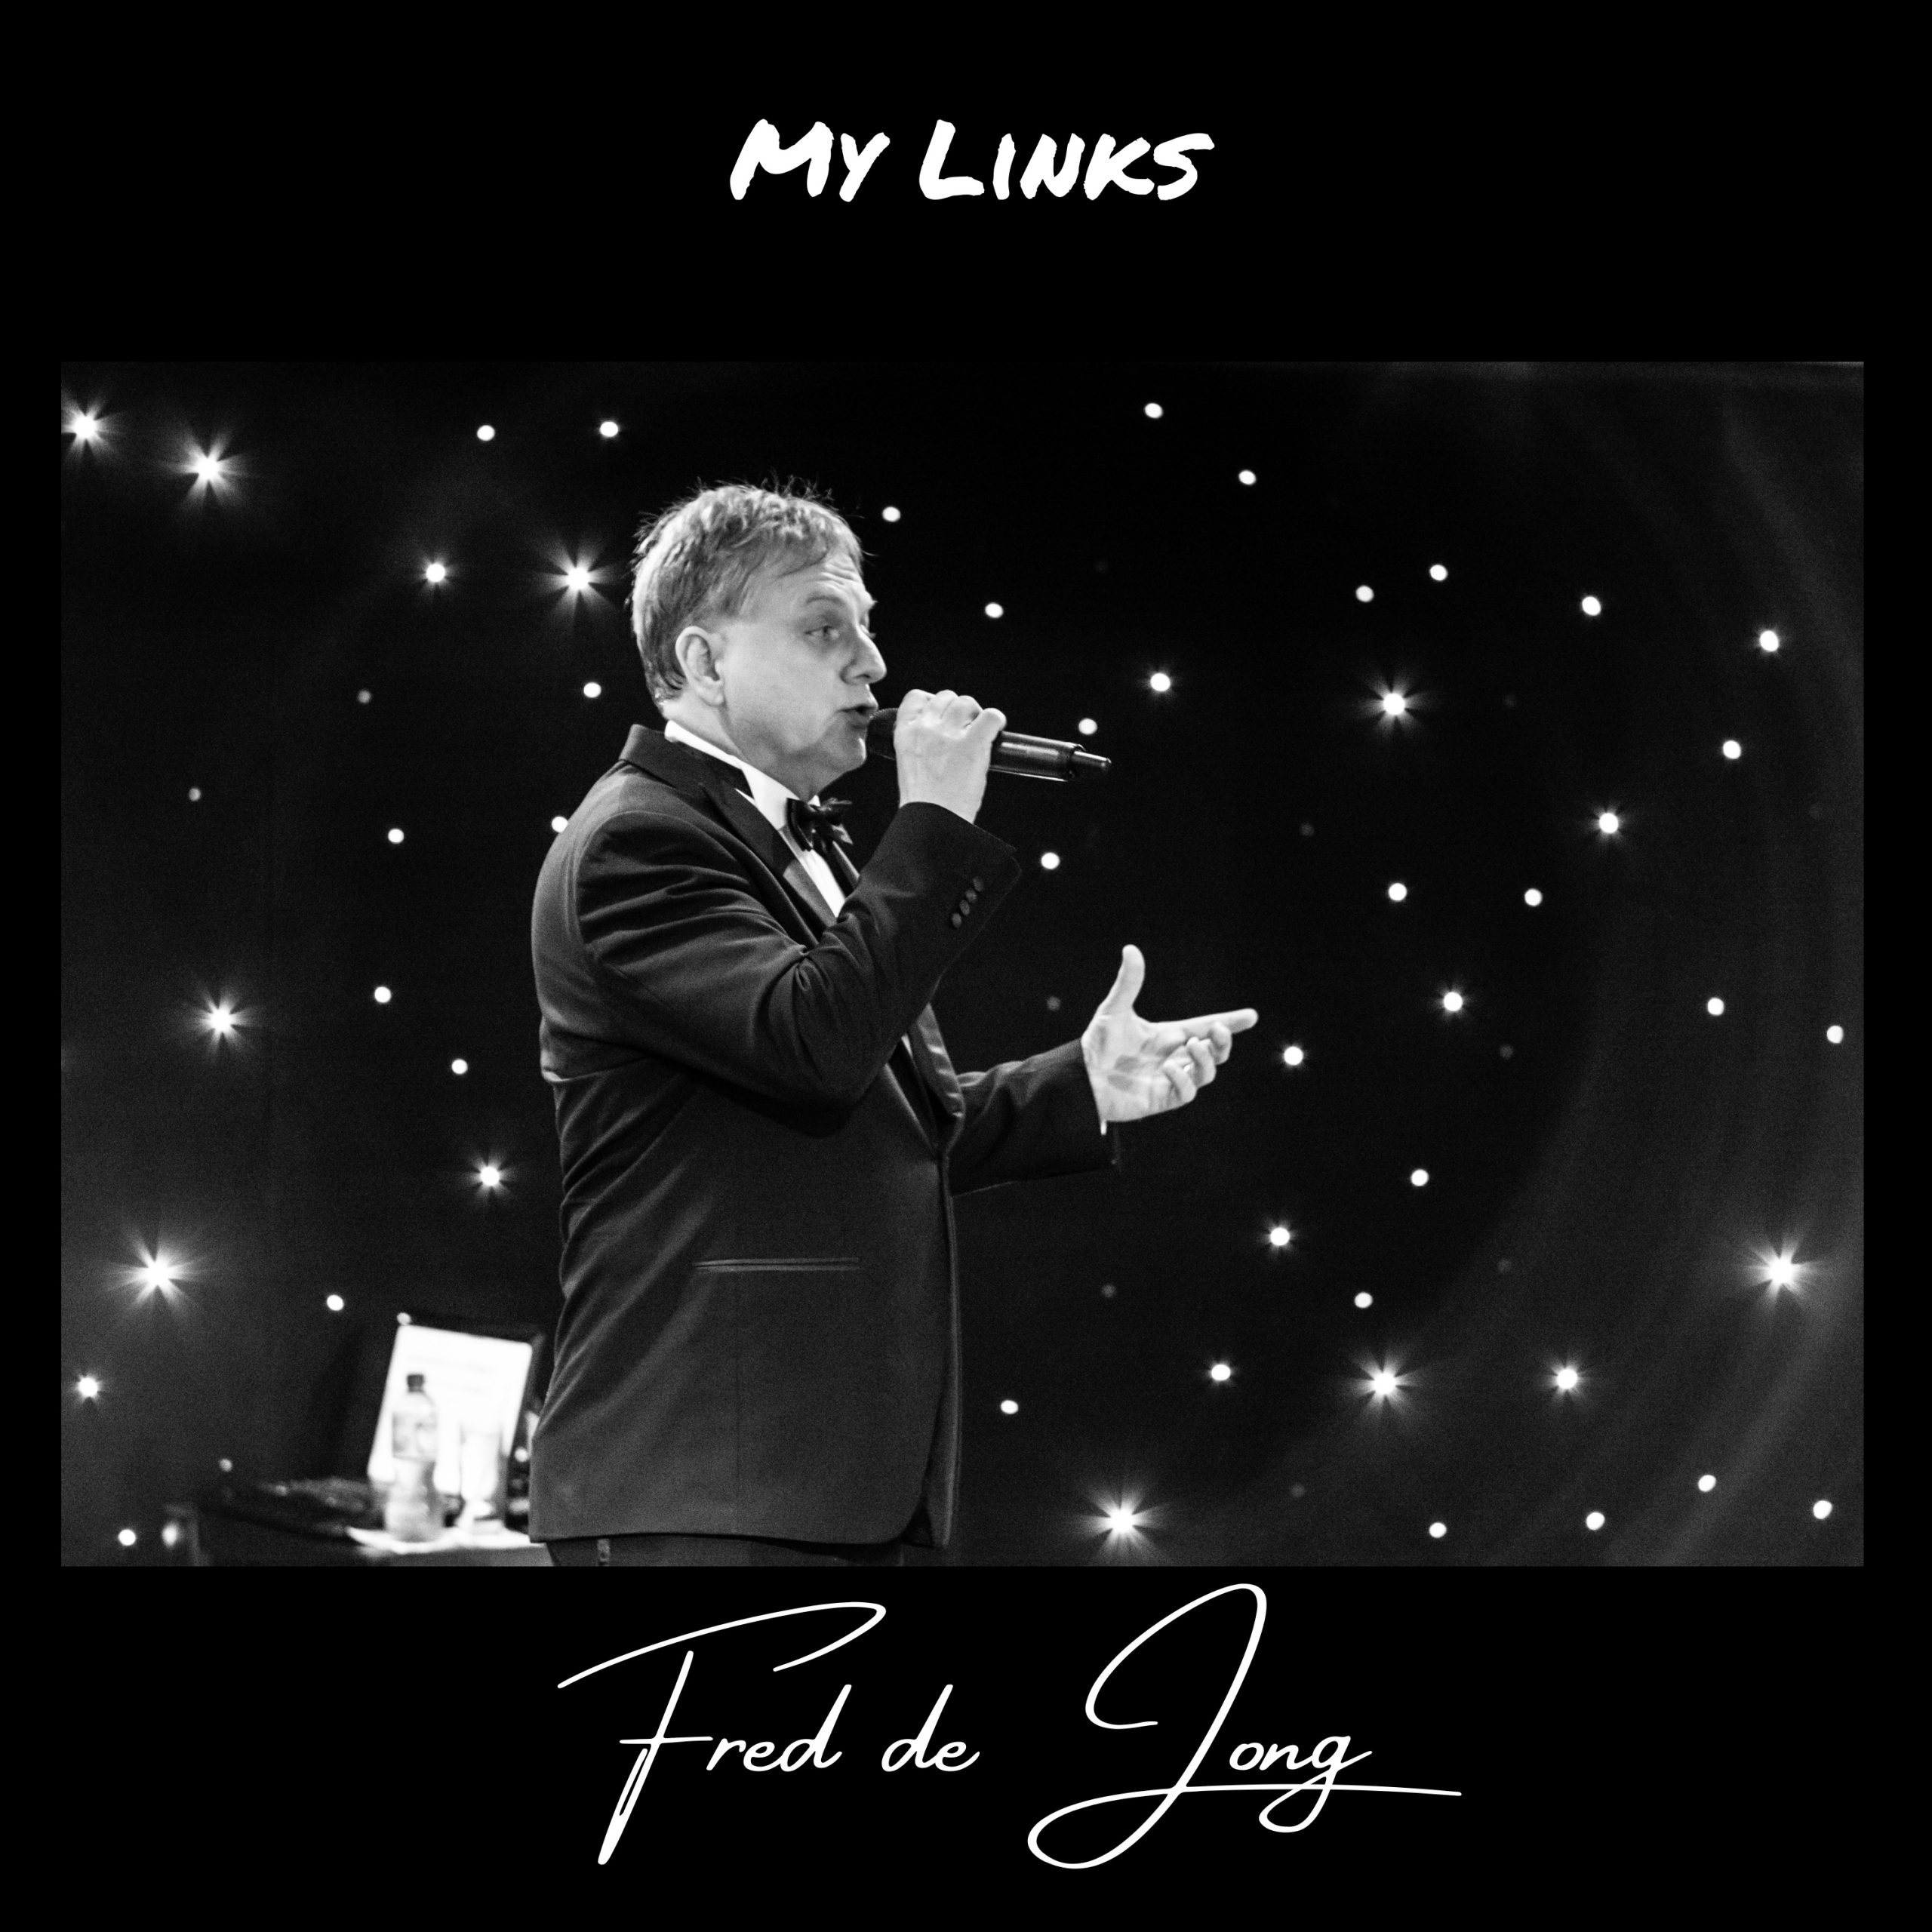 My Links - Fred de Jong